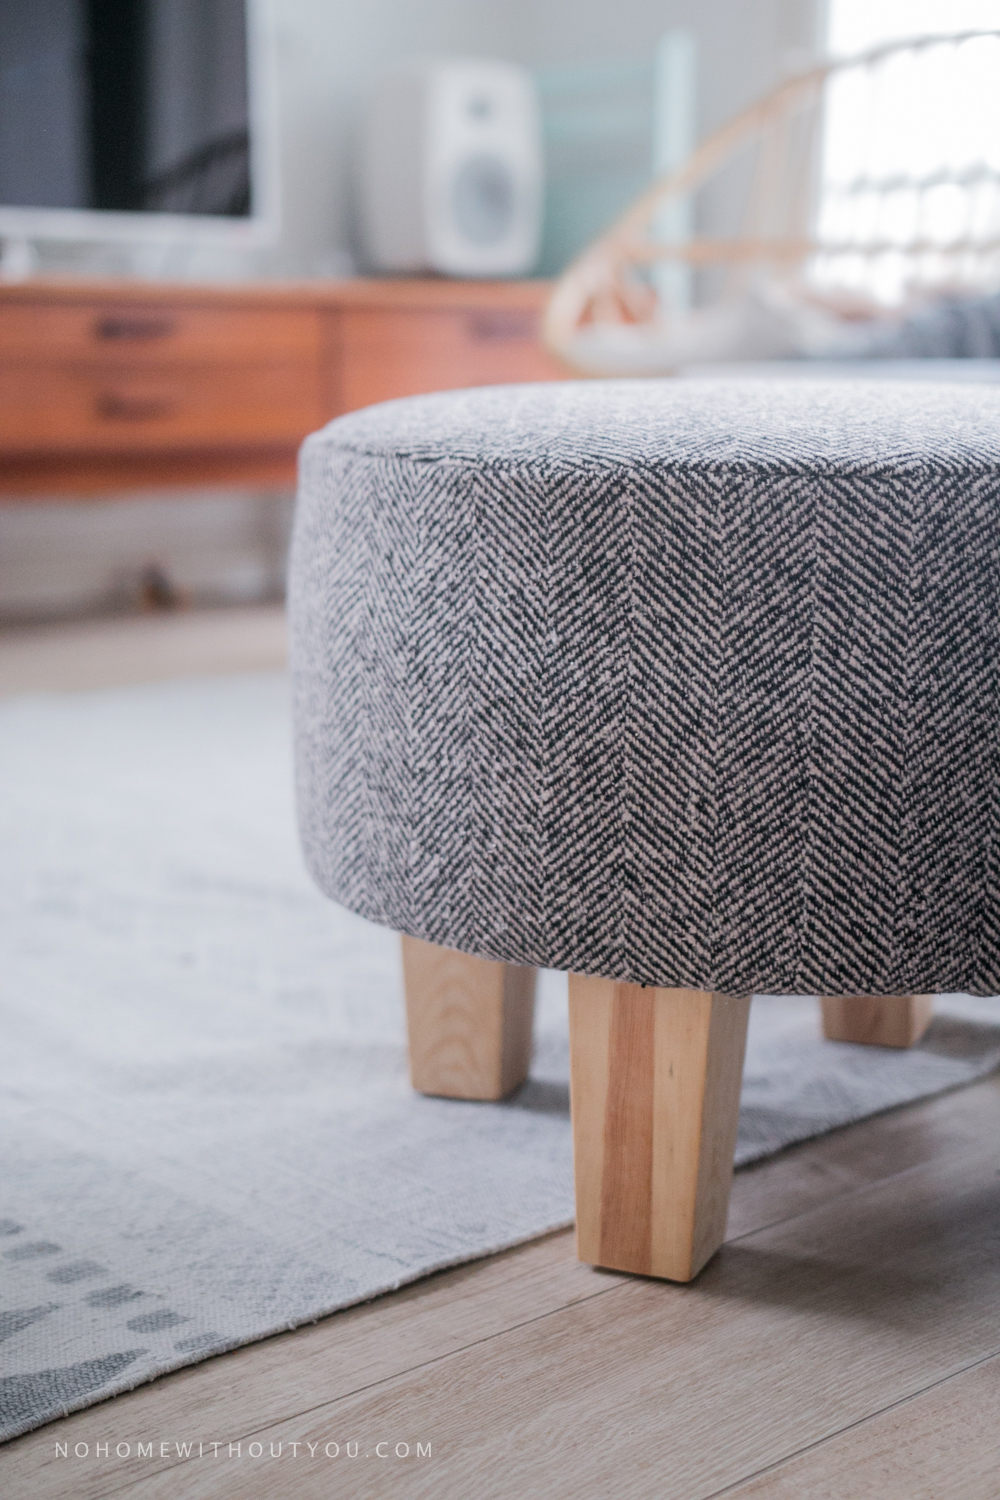 No home without you - DIY footstool makeover (7 of 12)